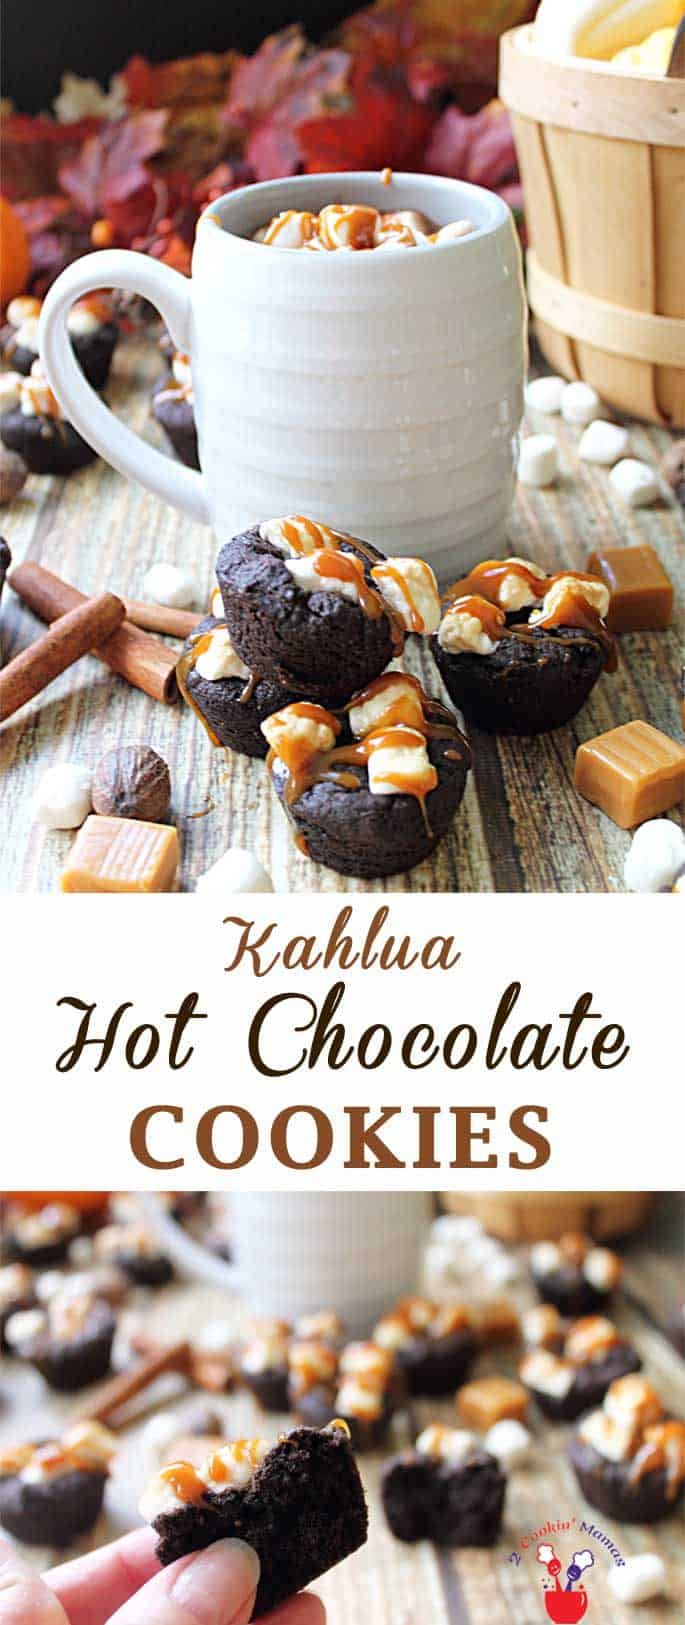 Kahlua Hot Chocolate Cookies | 2 Cookin Mamas Kahlua Hot Chocolate Cookies are rich & full of chocolate, cinnamon & coffee flavor. Topped with marshmallows & a caramel drizzle, they're a decadent treat. #cookies #recipe #hotchocolate